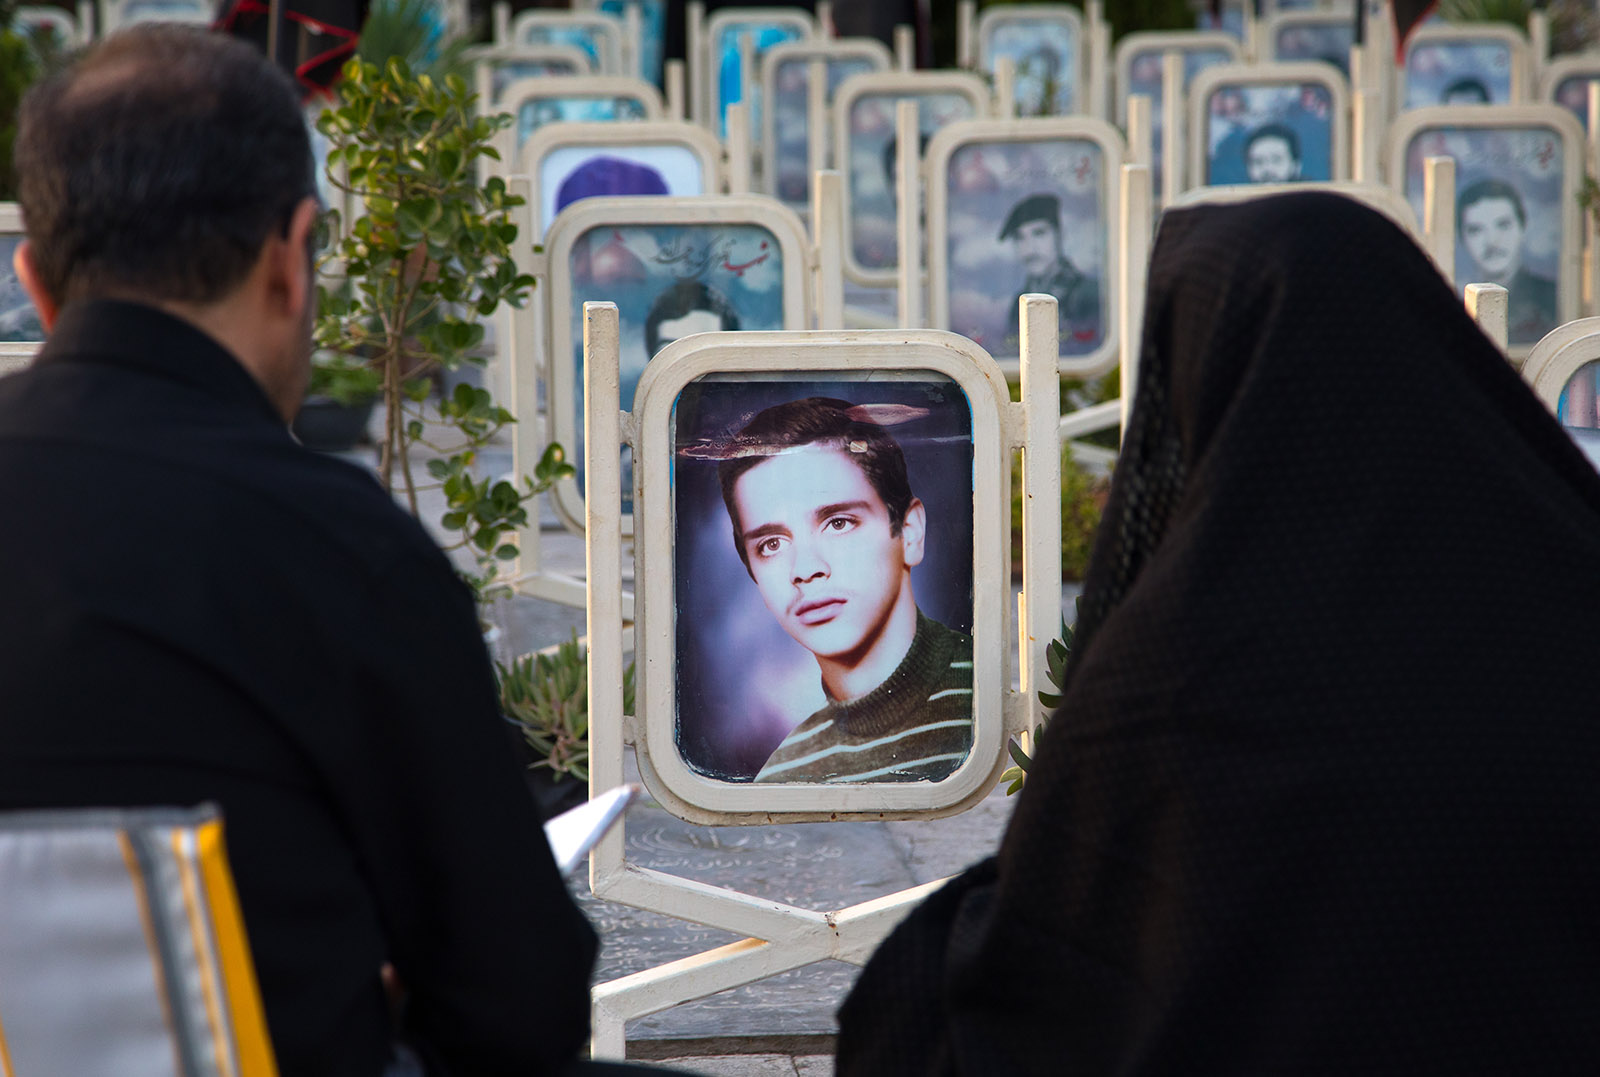 Iran's Reformists: 'This War Will Have Only Losers'